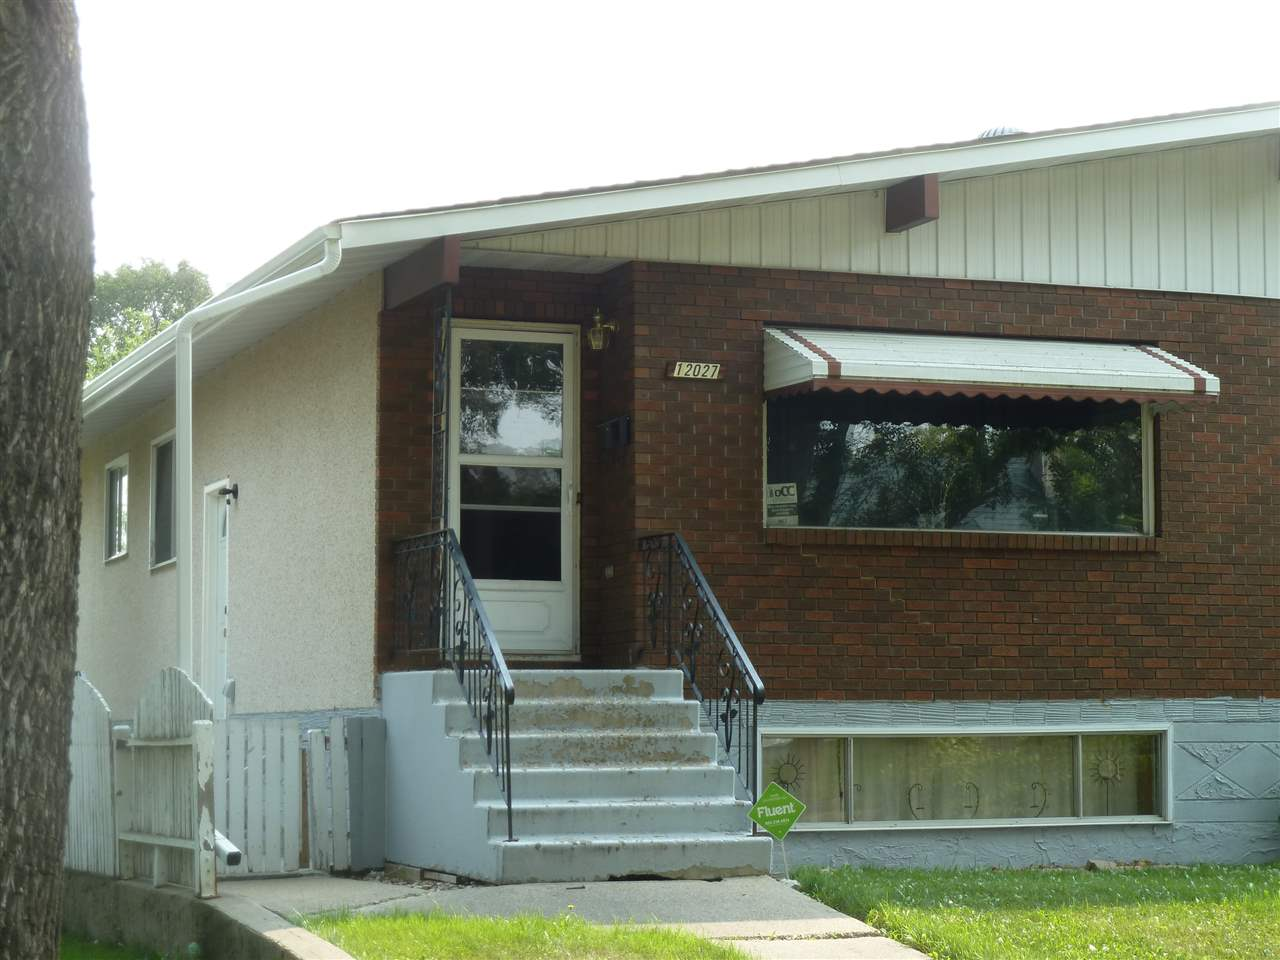 Main Photo: 12027 85 Street NW in Edmonton: Zone 05 House Half Duplex for sale : MLS® # E4077869